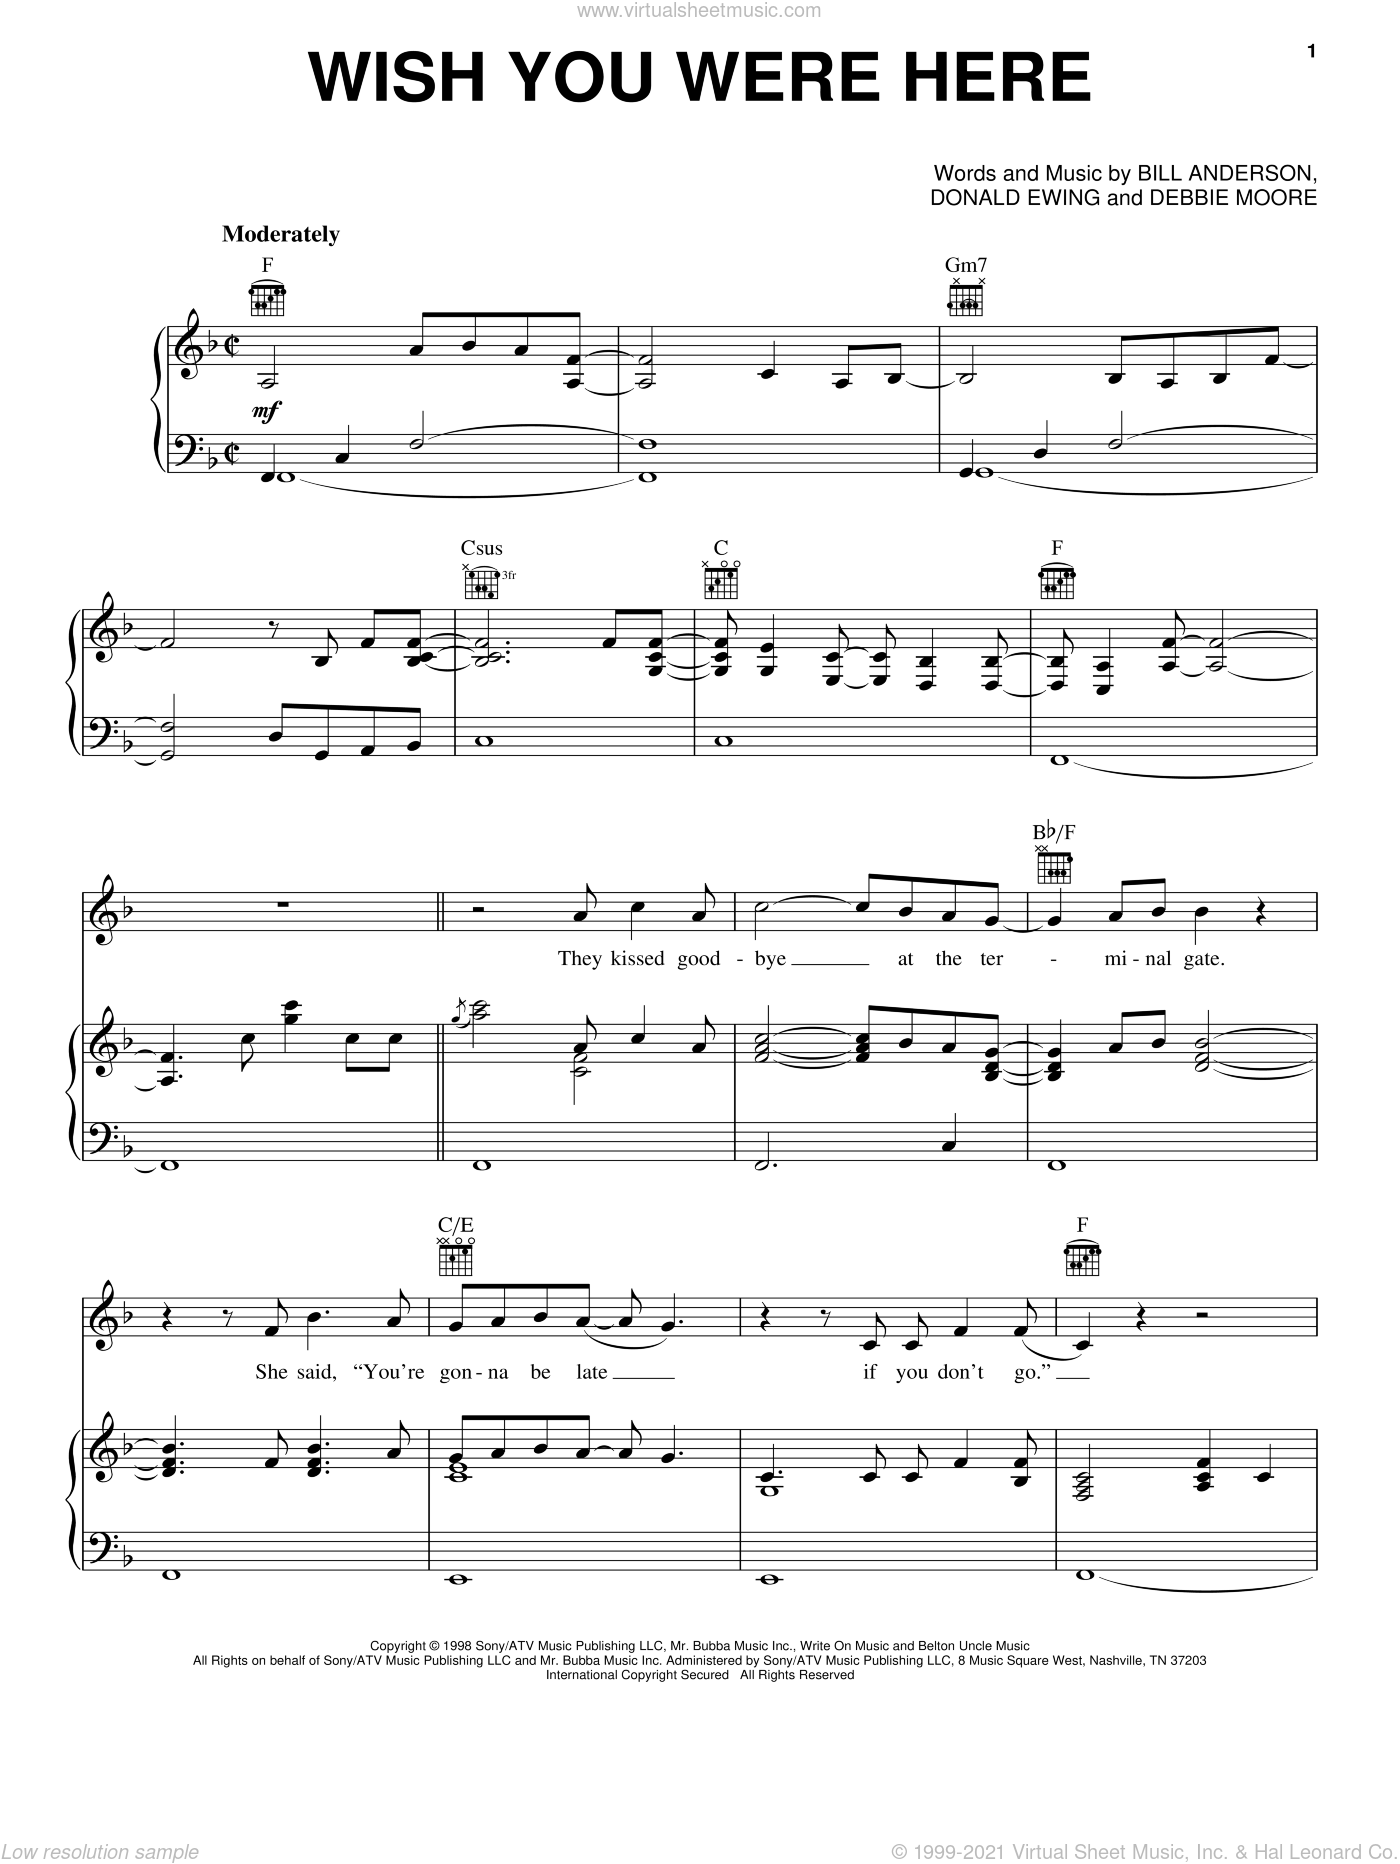 Wish You Were Here sheet music for voice, piano or guitar by Bill Anderson, Mark Wills, Debbie Moore and Donald Ewing, intermediate skill level